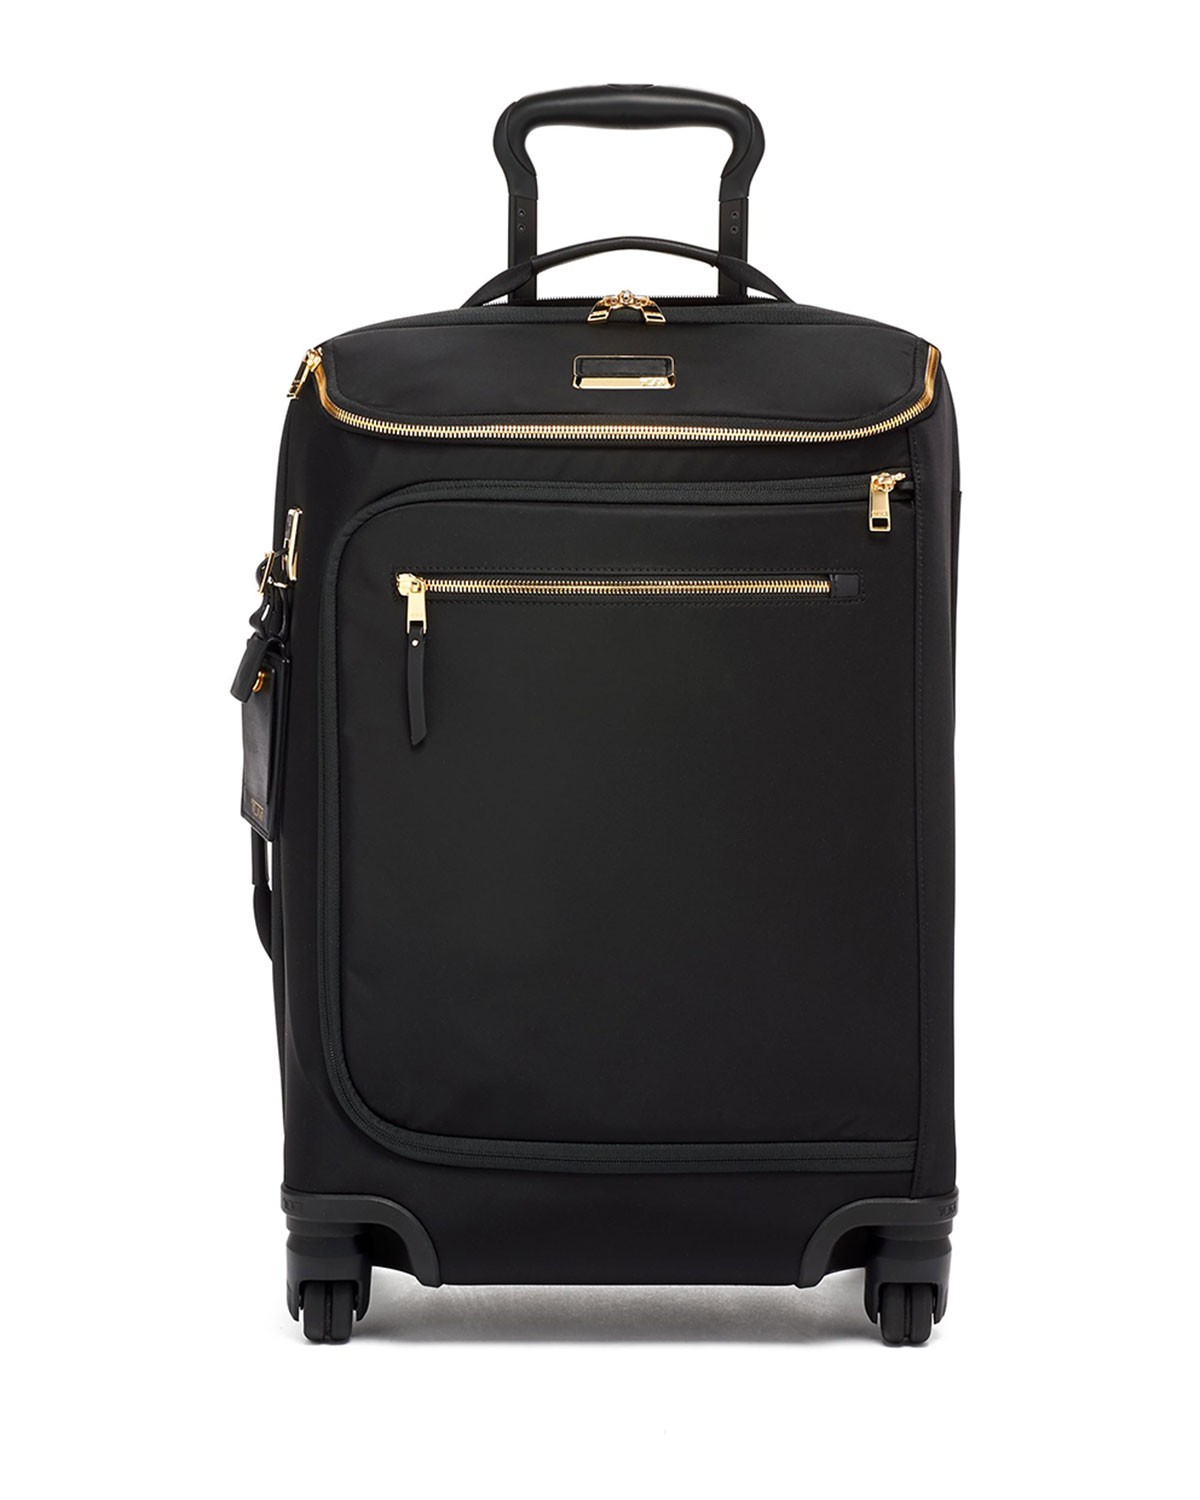 Leger International Carry-On Luggage